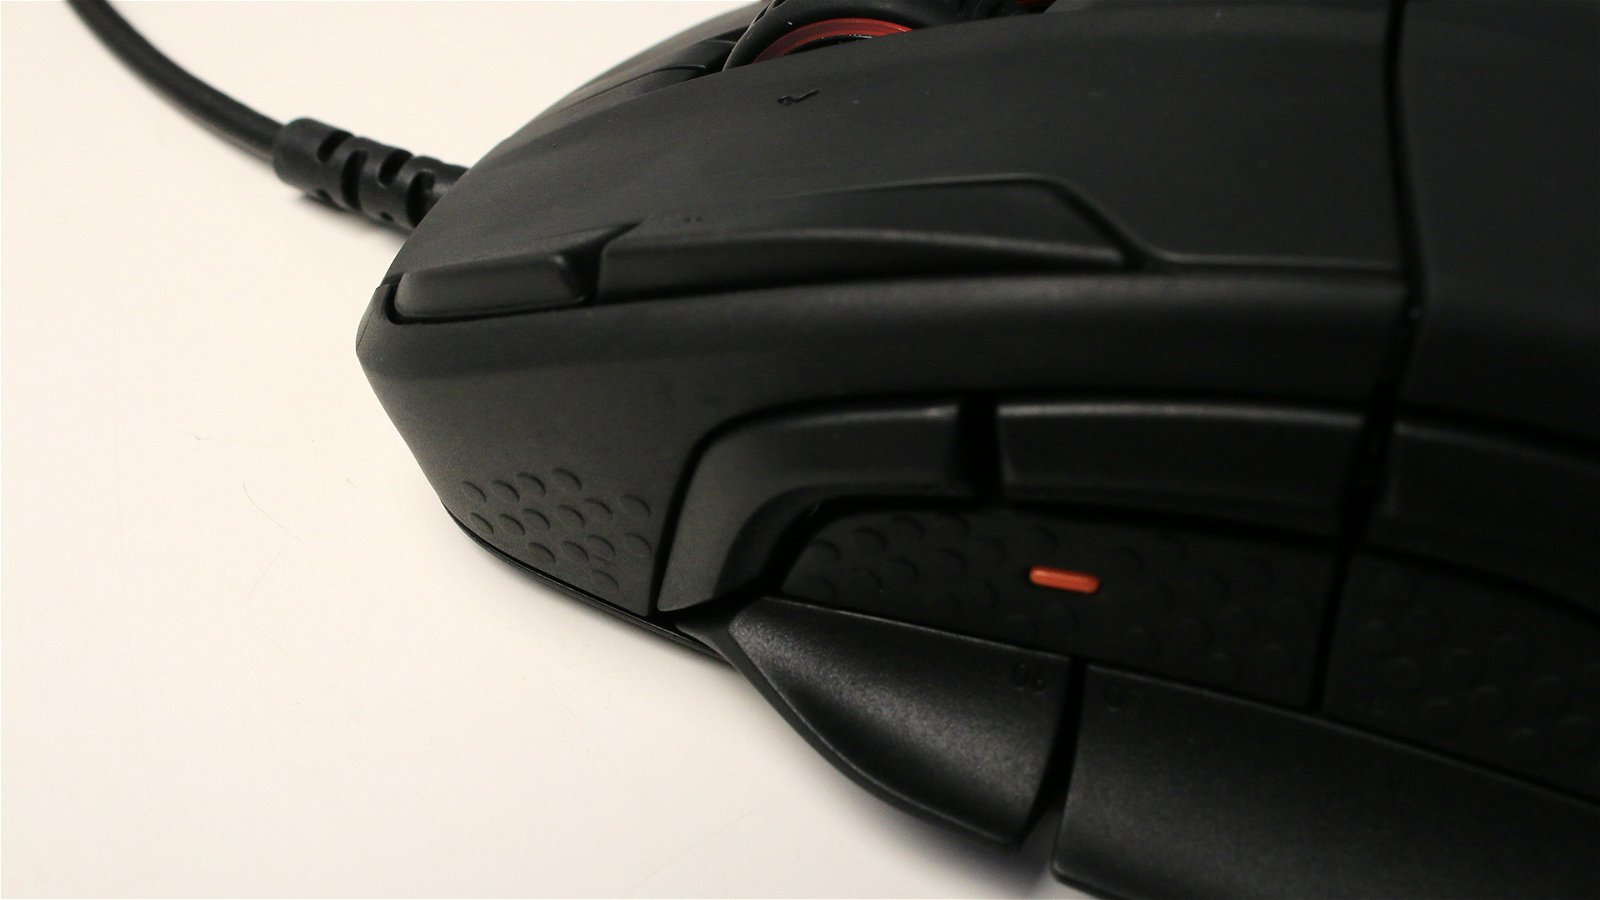 Steelseries Rival 500 Gaming Mouse (Hardware) Review 1